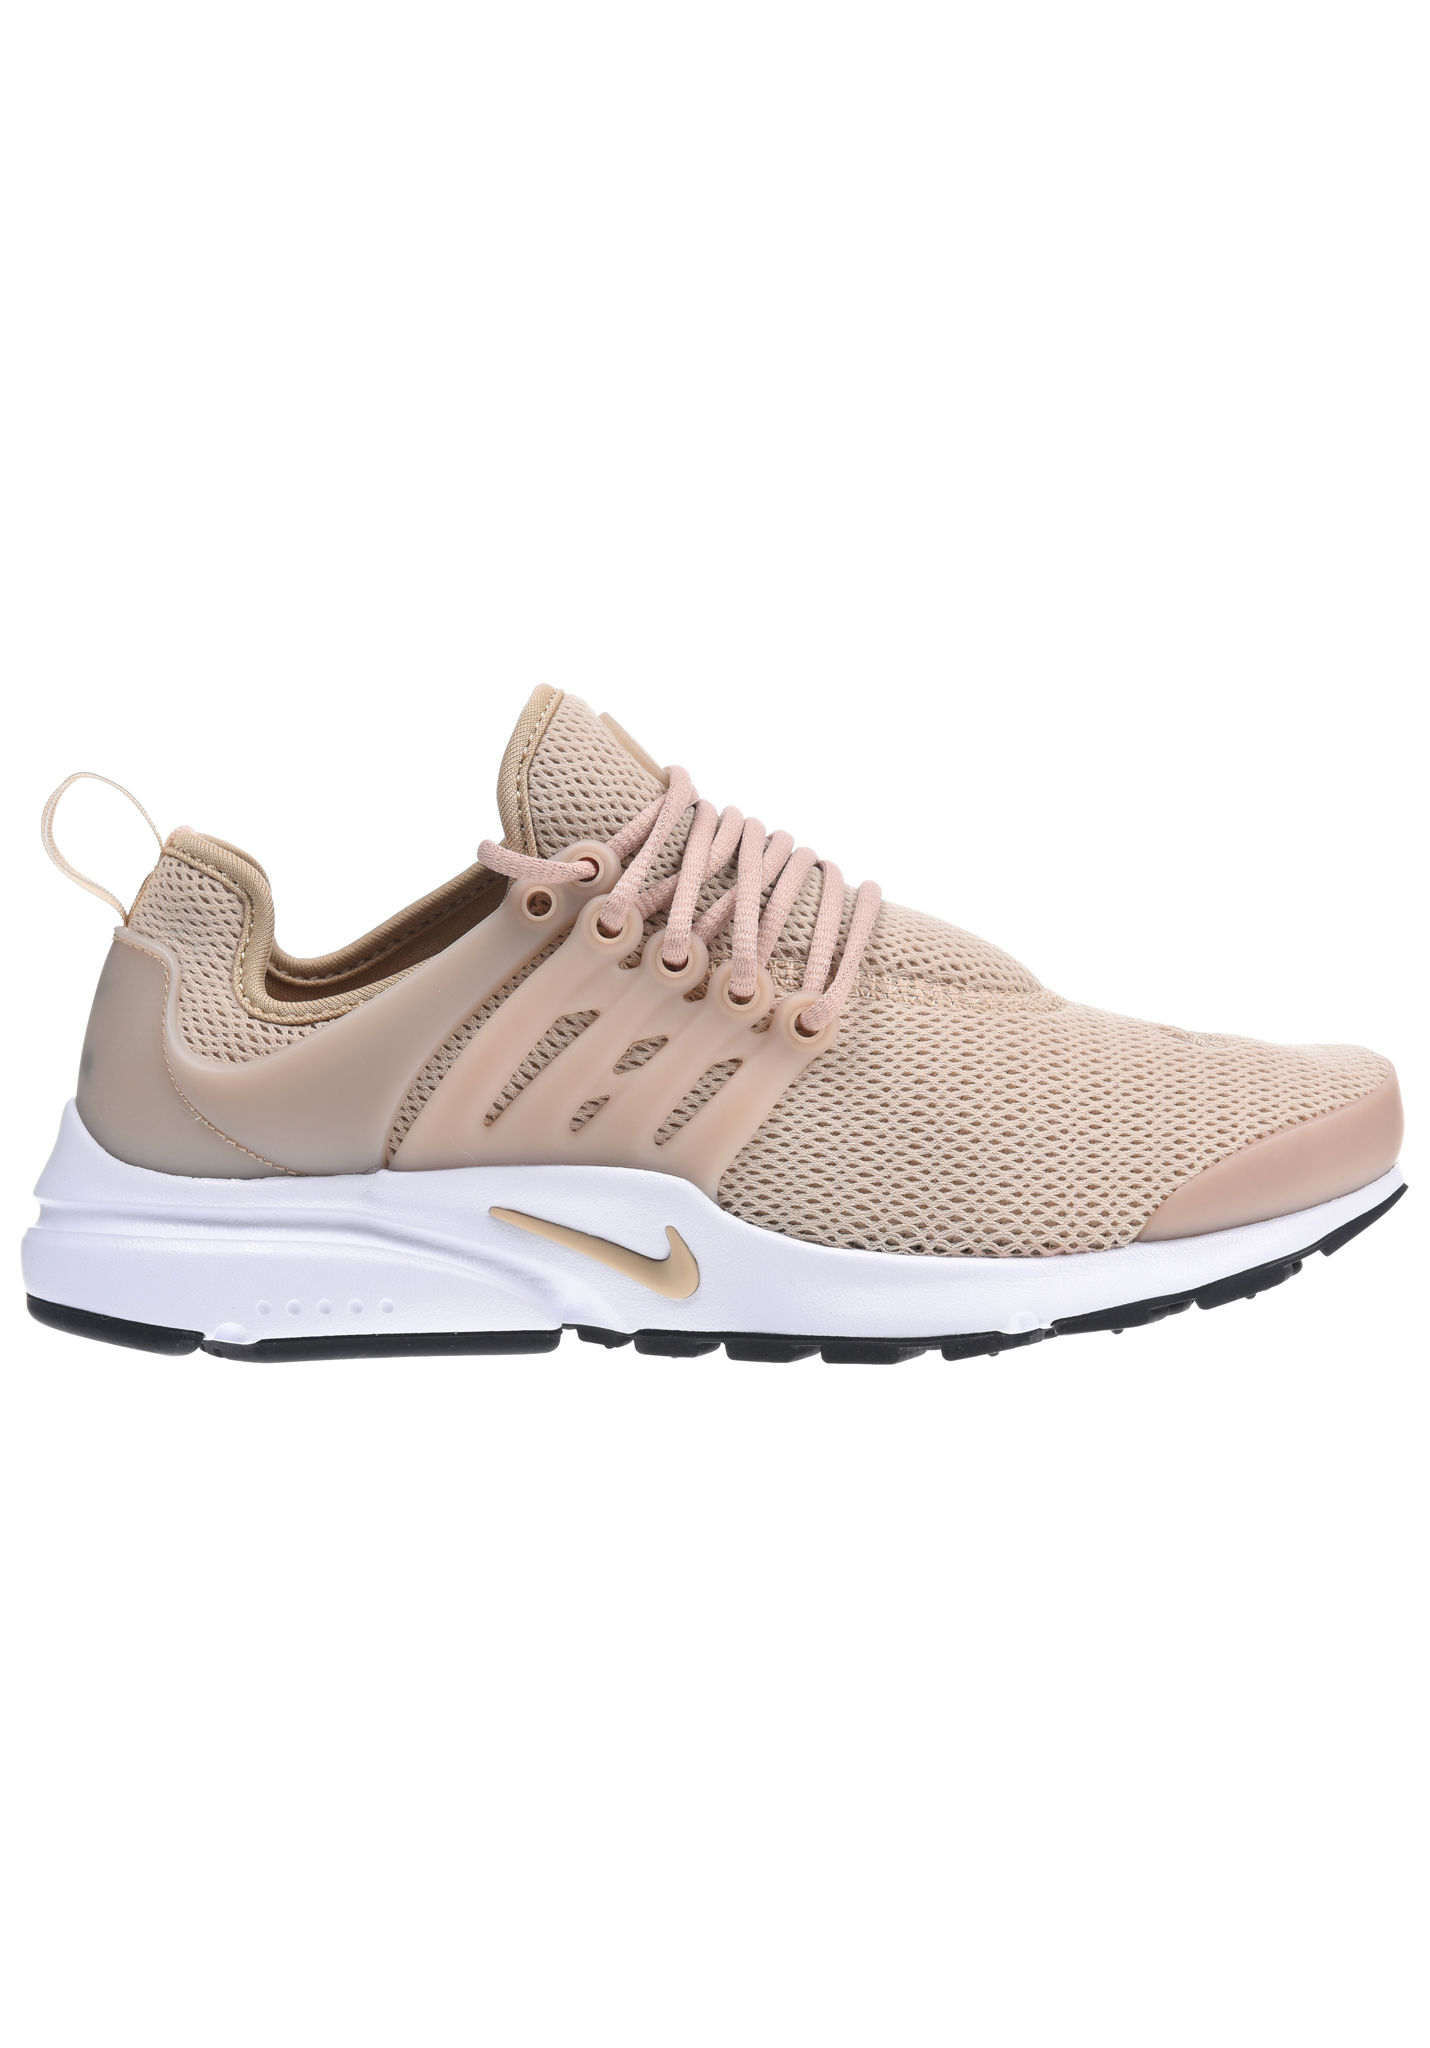 Baskets Nike Beige Presto Pour Planet Sports Sportswear Femme Air RPwrtqP